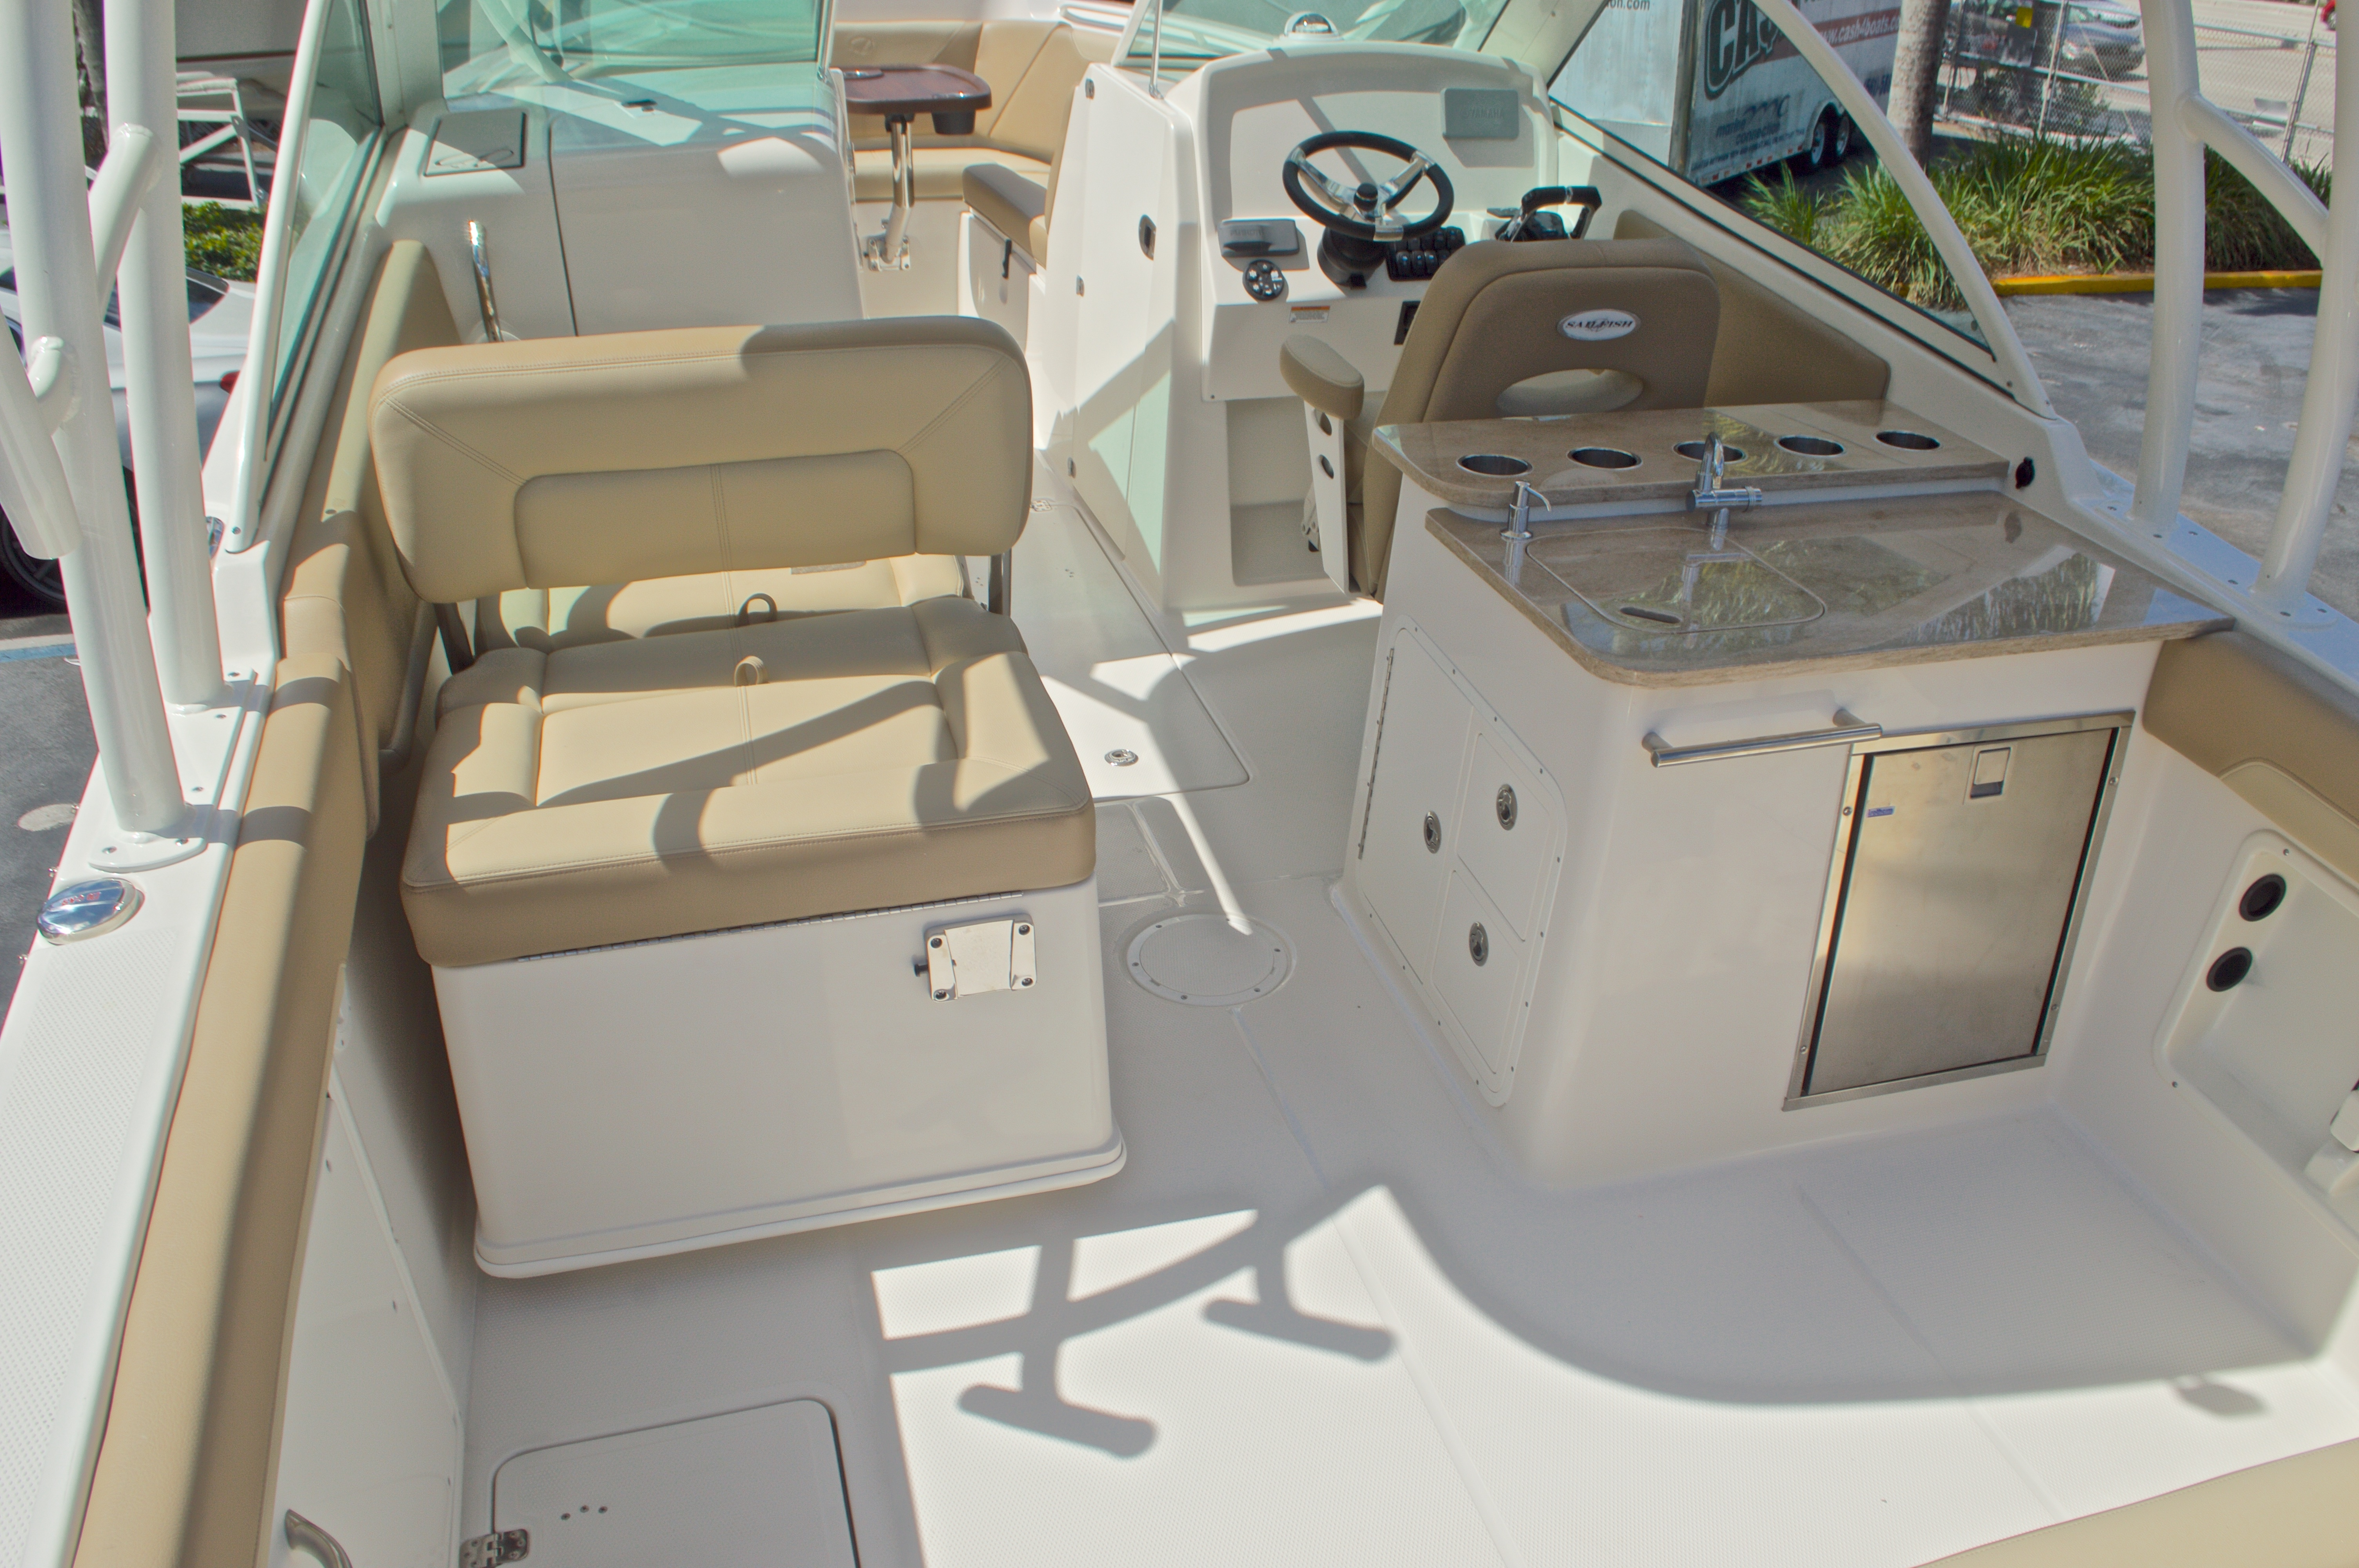 Thumbnail 11 for New 2017 Sailfish 275 Dual Console boat for sale in Vero Beach, FL